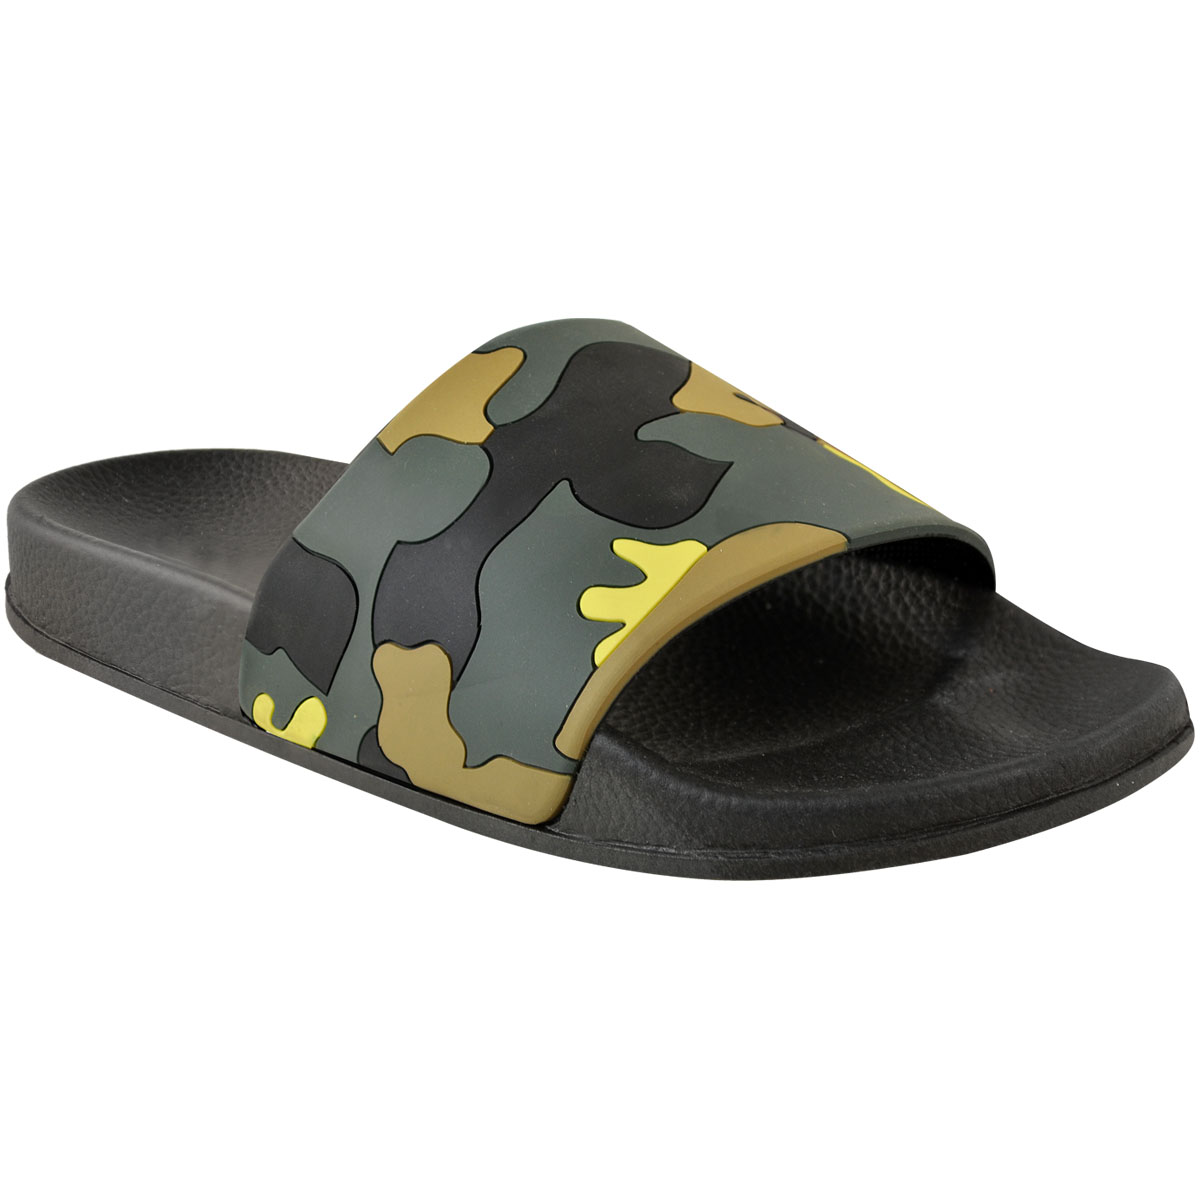 b51ac744f New Womens Ladies Camo Green Slides Summer Pool Sliders Sandals Flip ...